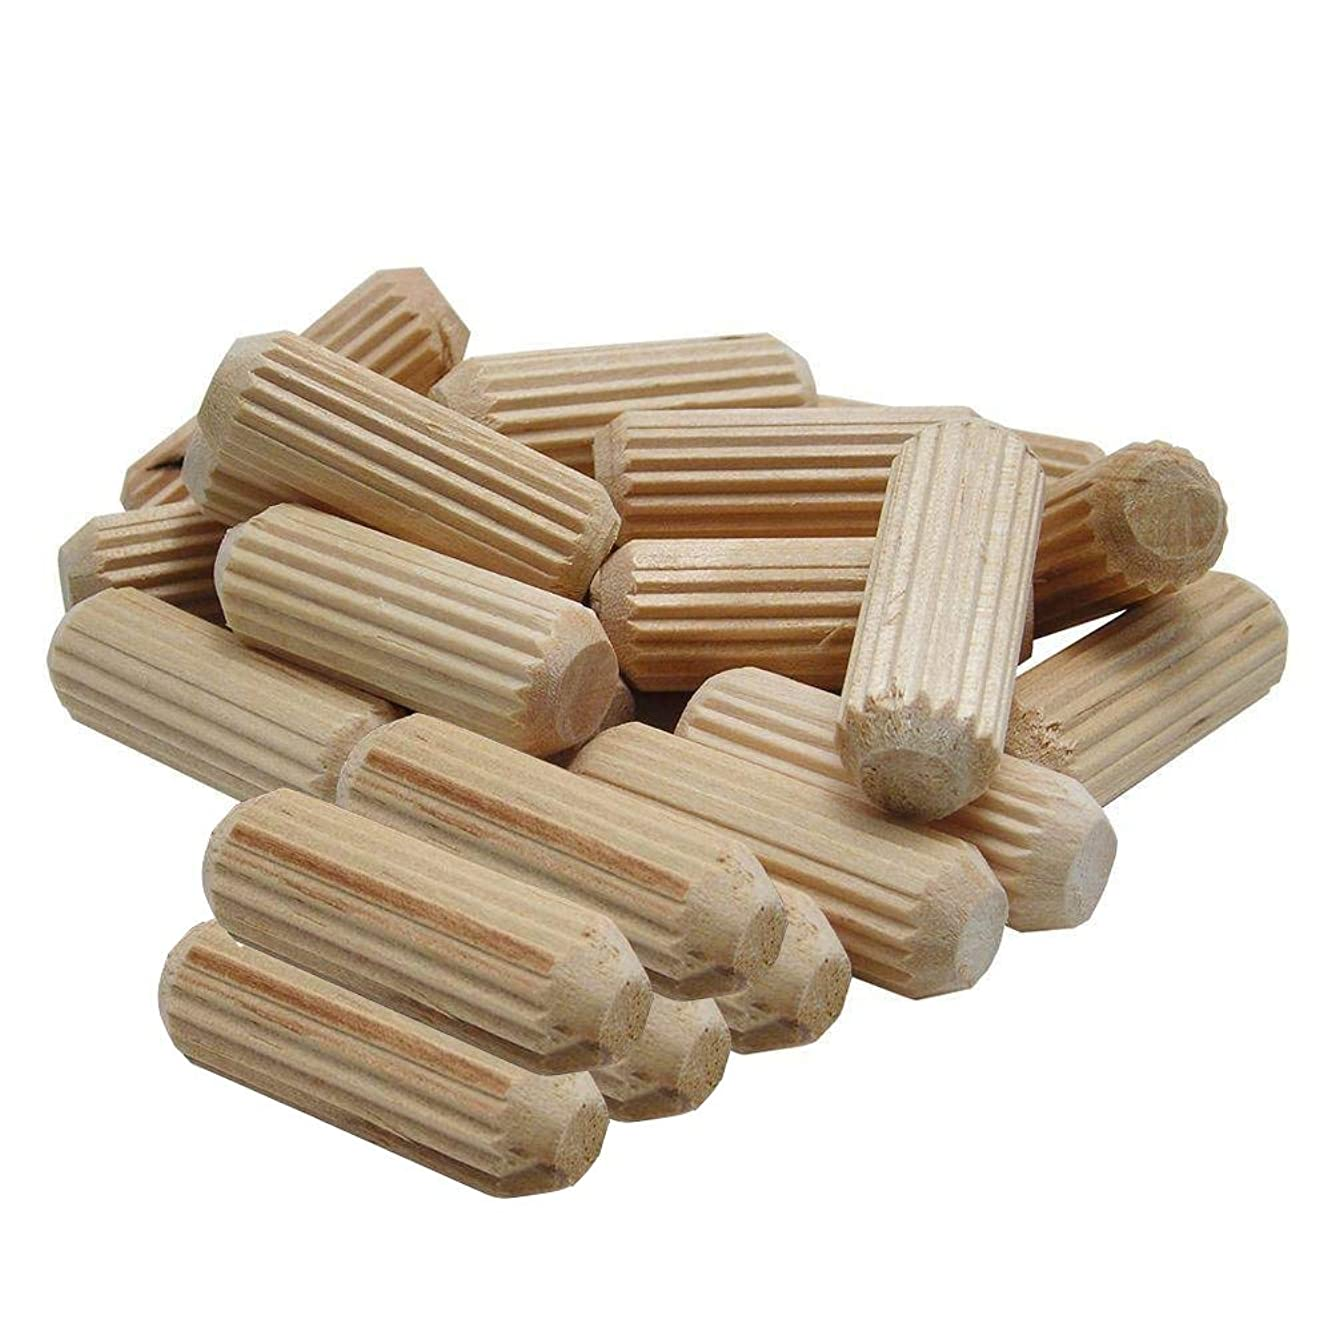 Saim Wooden Dowel 120 Pack 10mm x 40mm for Wood Craft Supplies DIY Projects Hardwood Dowel Sticks for Manual Creative Woodworking Wooden Stick for Fixing (120 Pack)